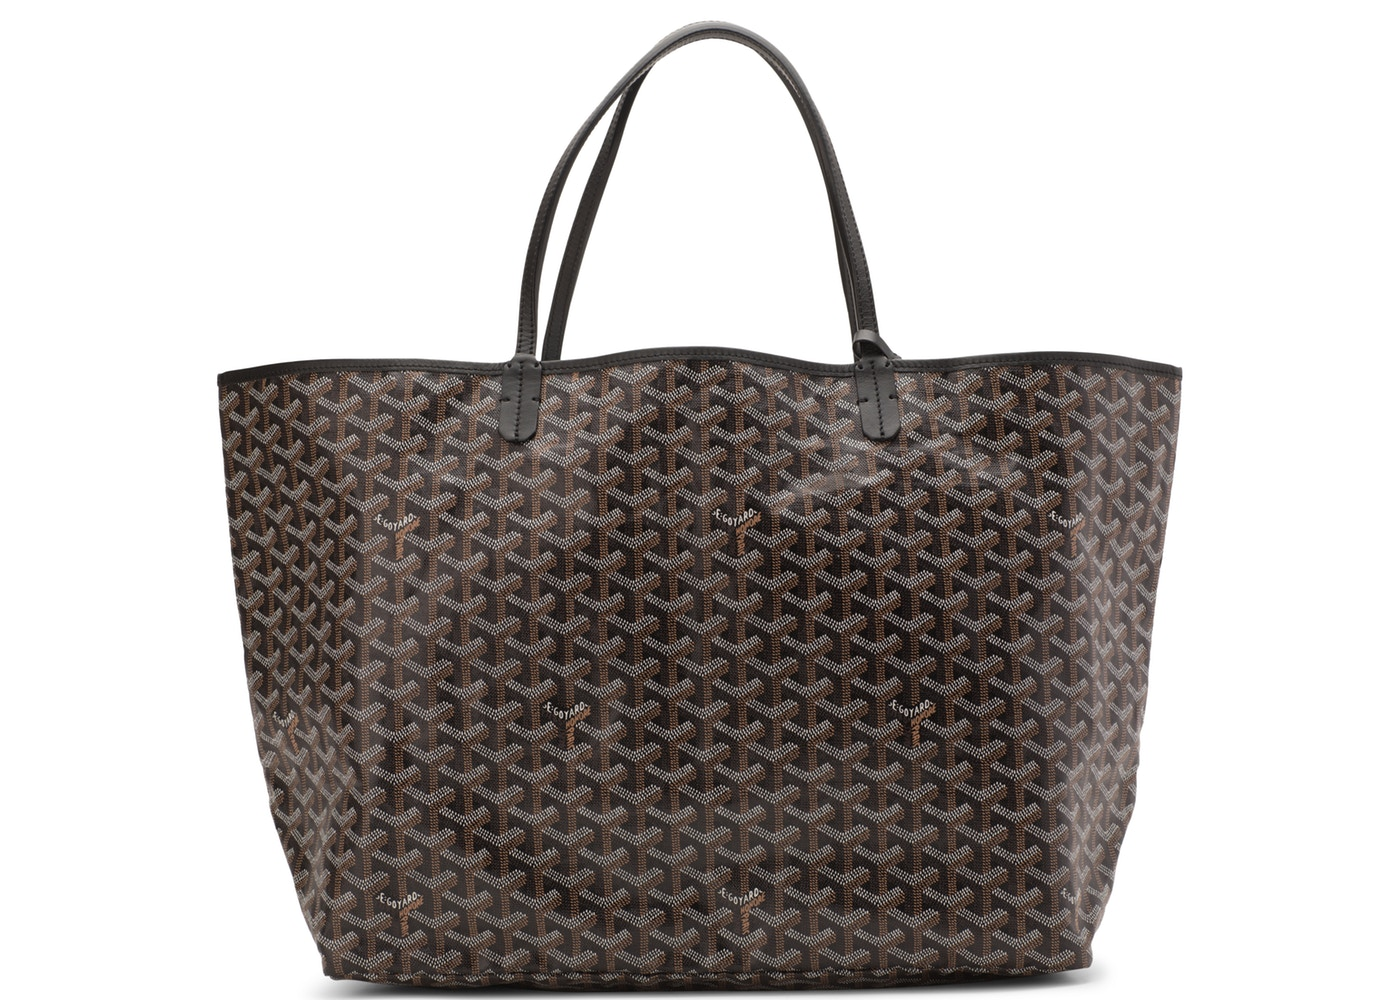 14c25754d39e All the Different Colors of Goyard Bags - StockX News